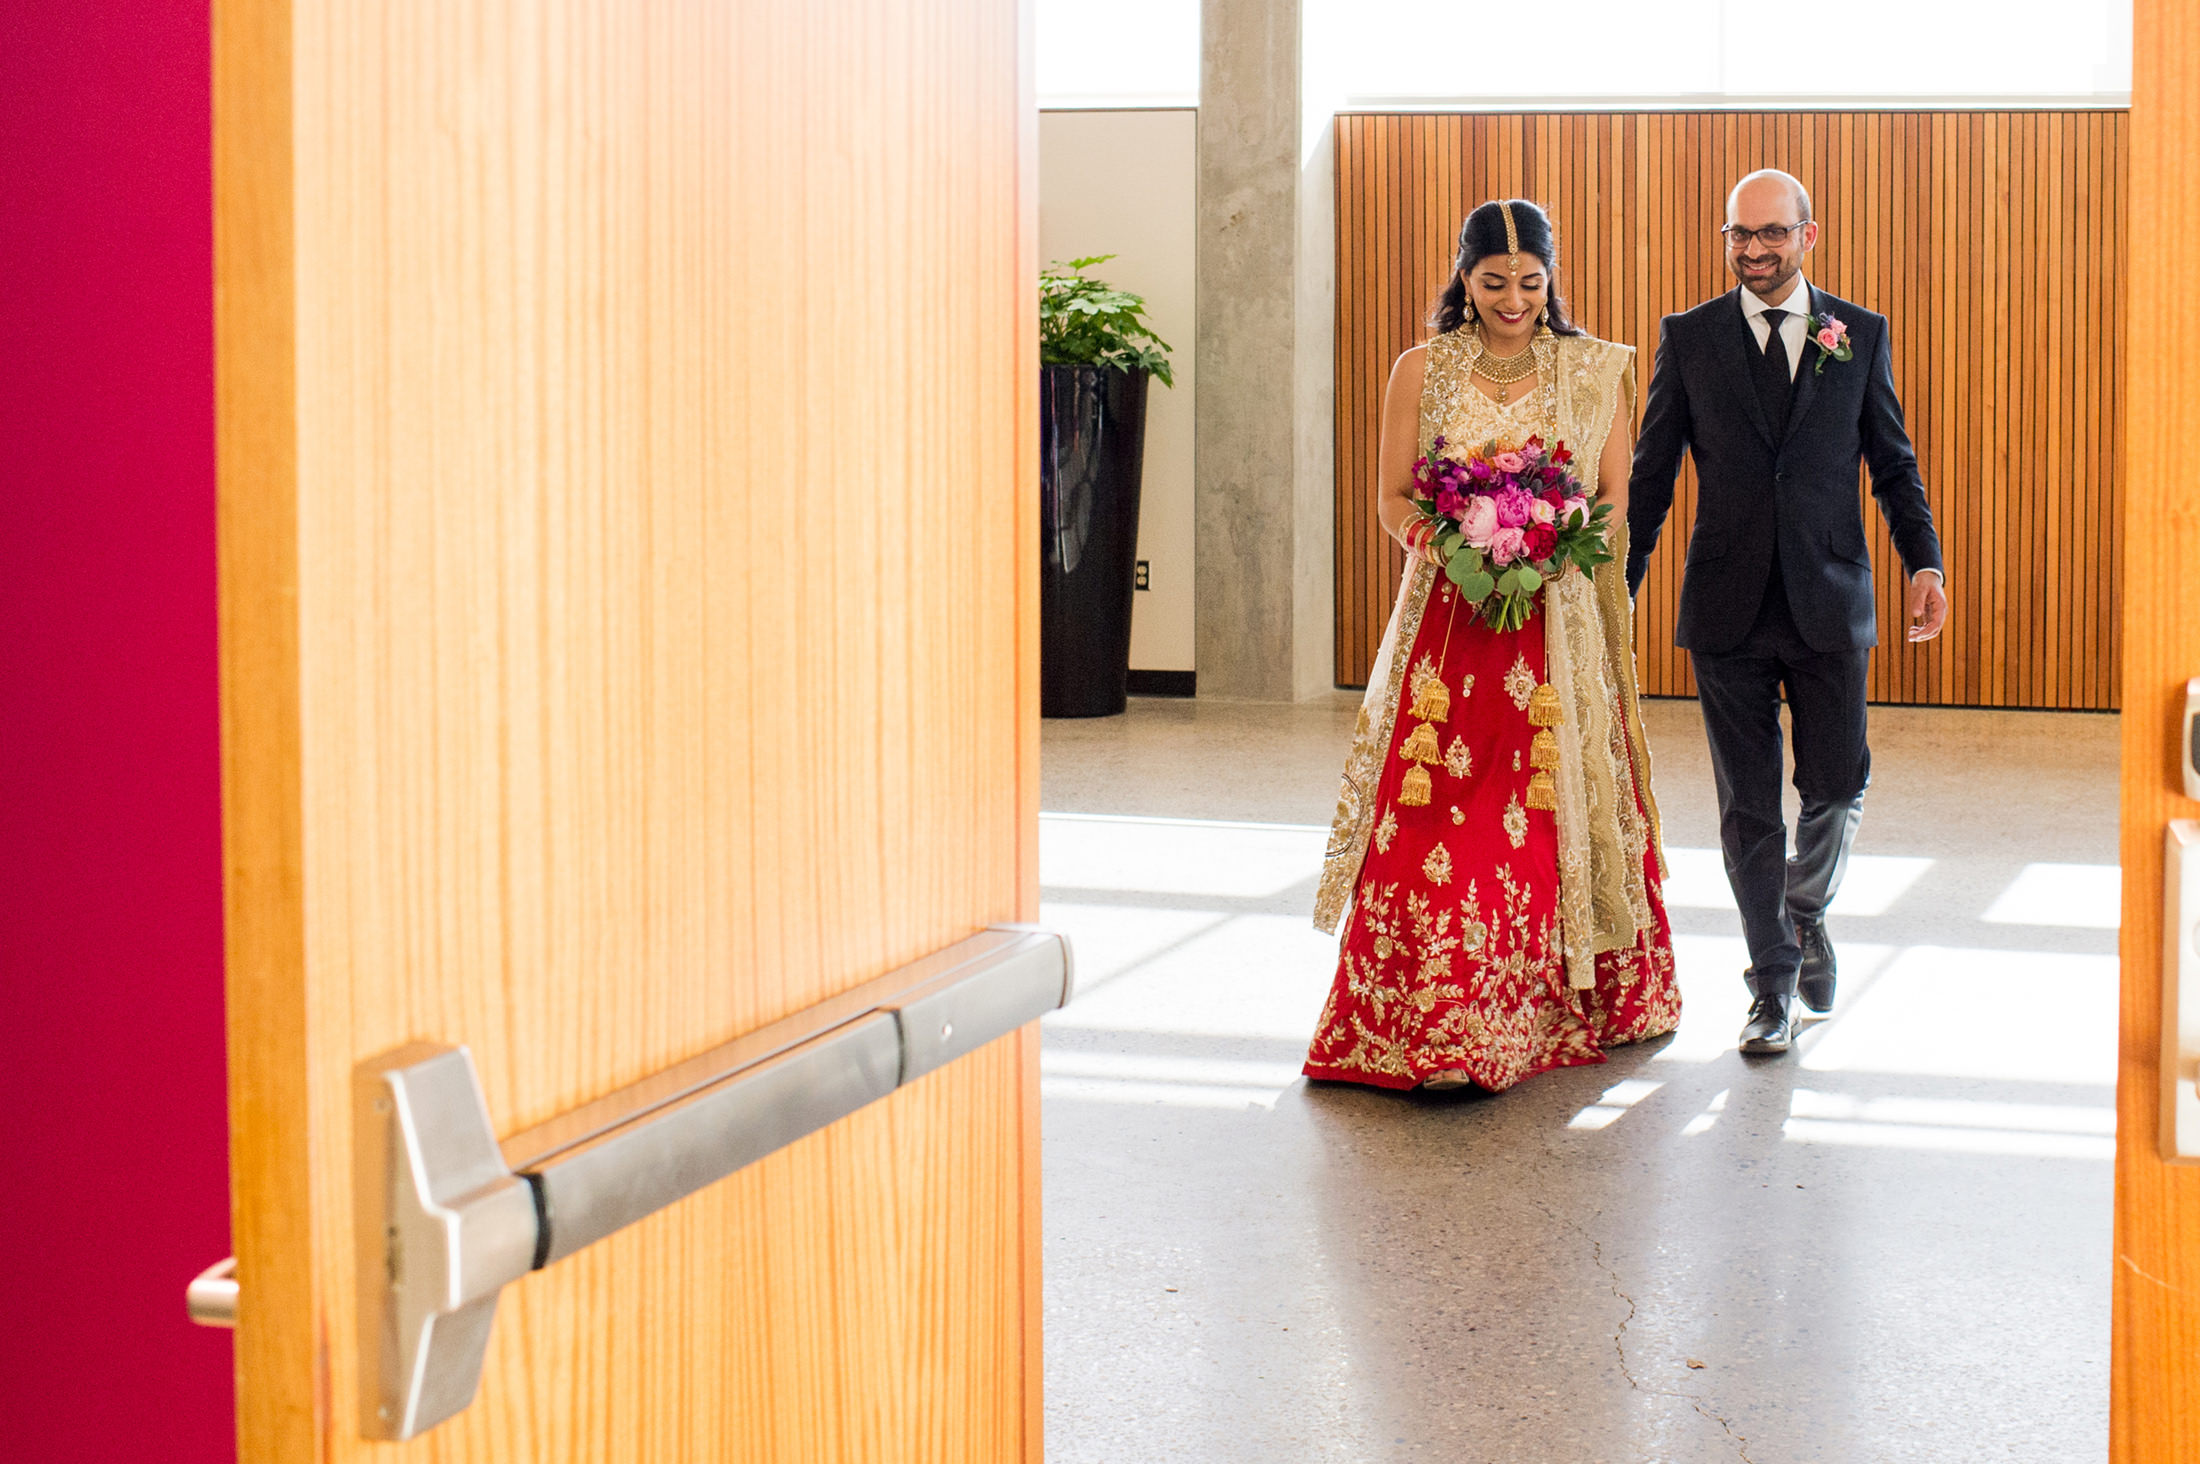 Edmonton_wedding_photographers_enjoy_center_wedding_Kiran_faisal_26.jpg